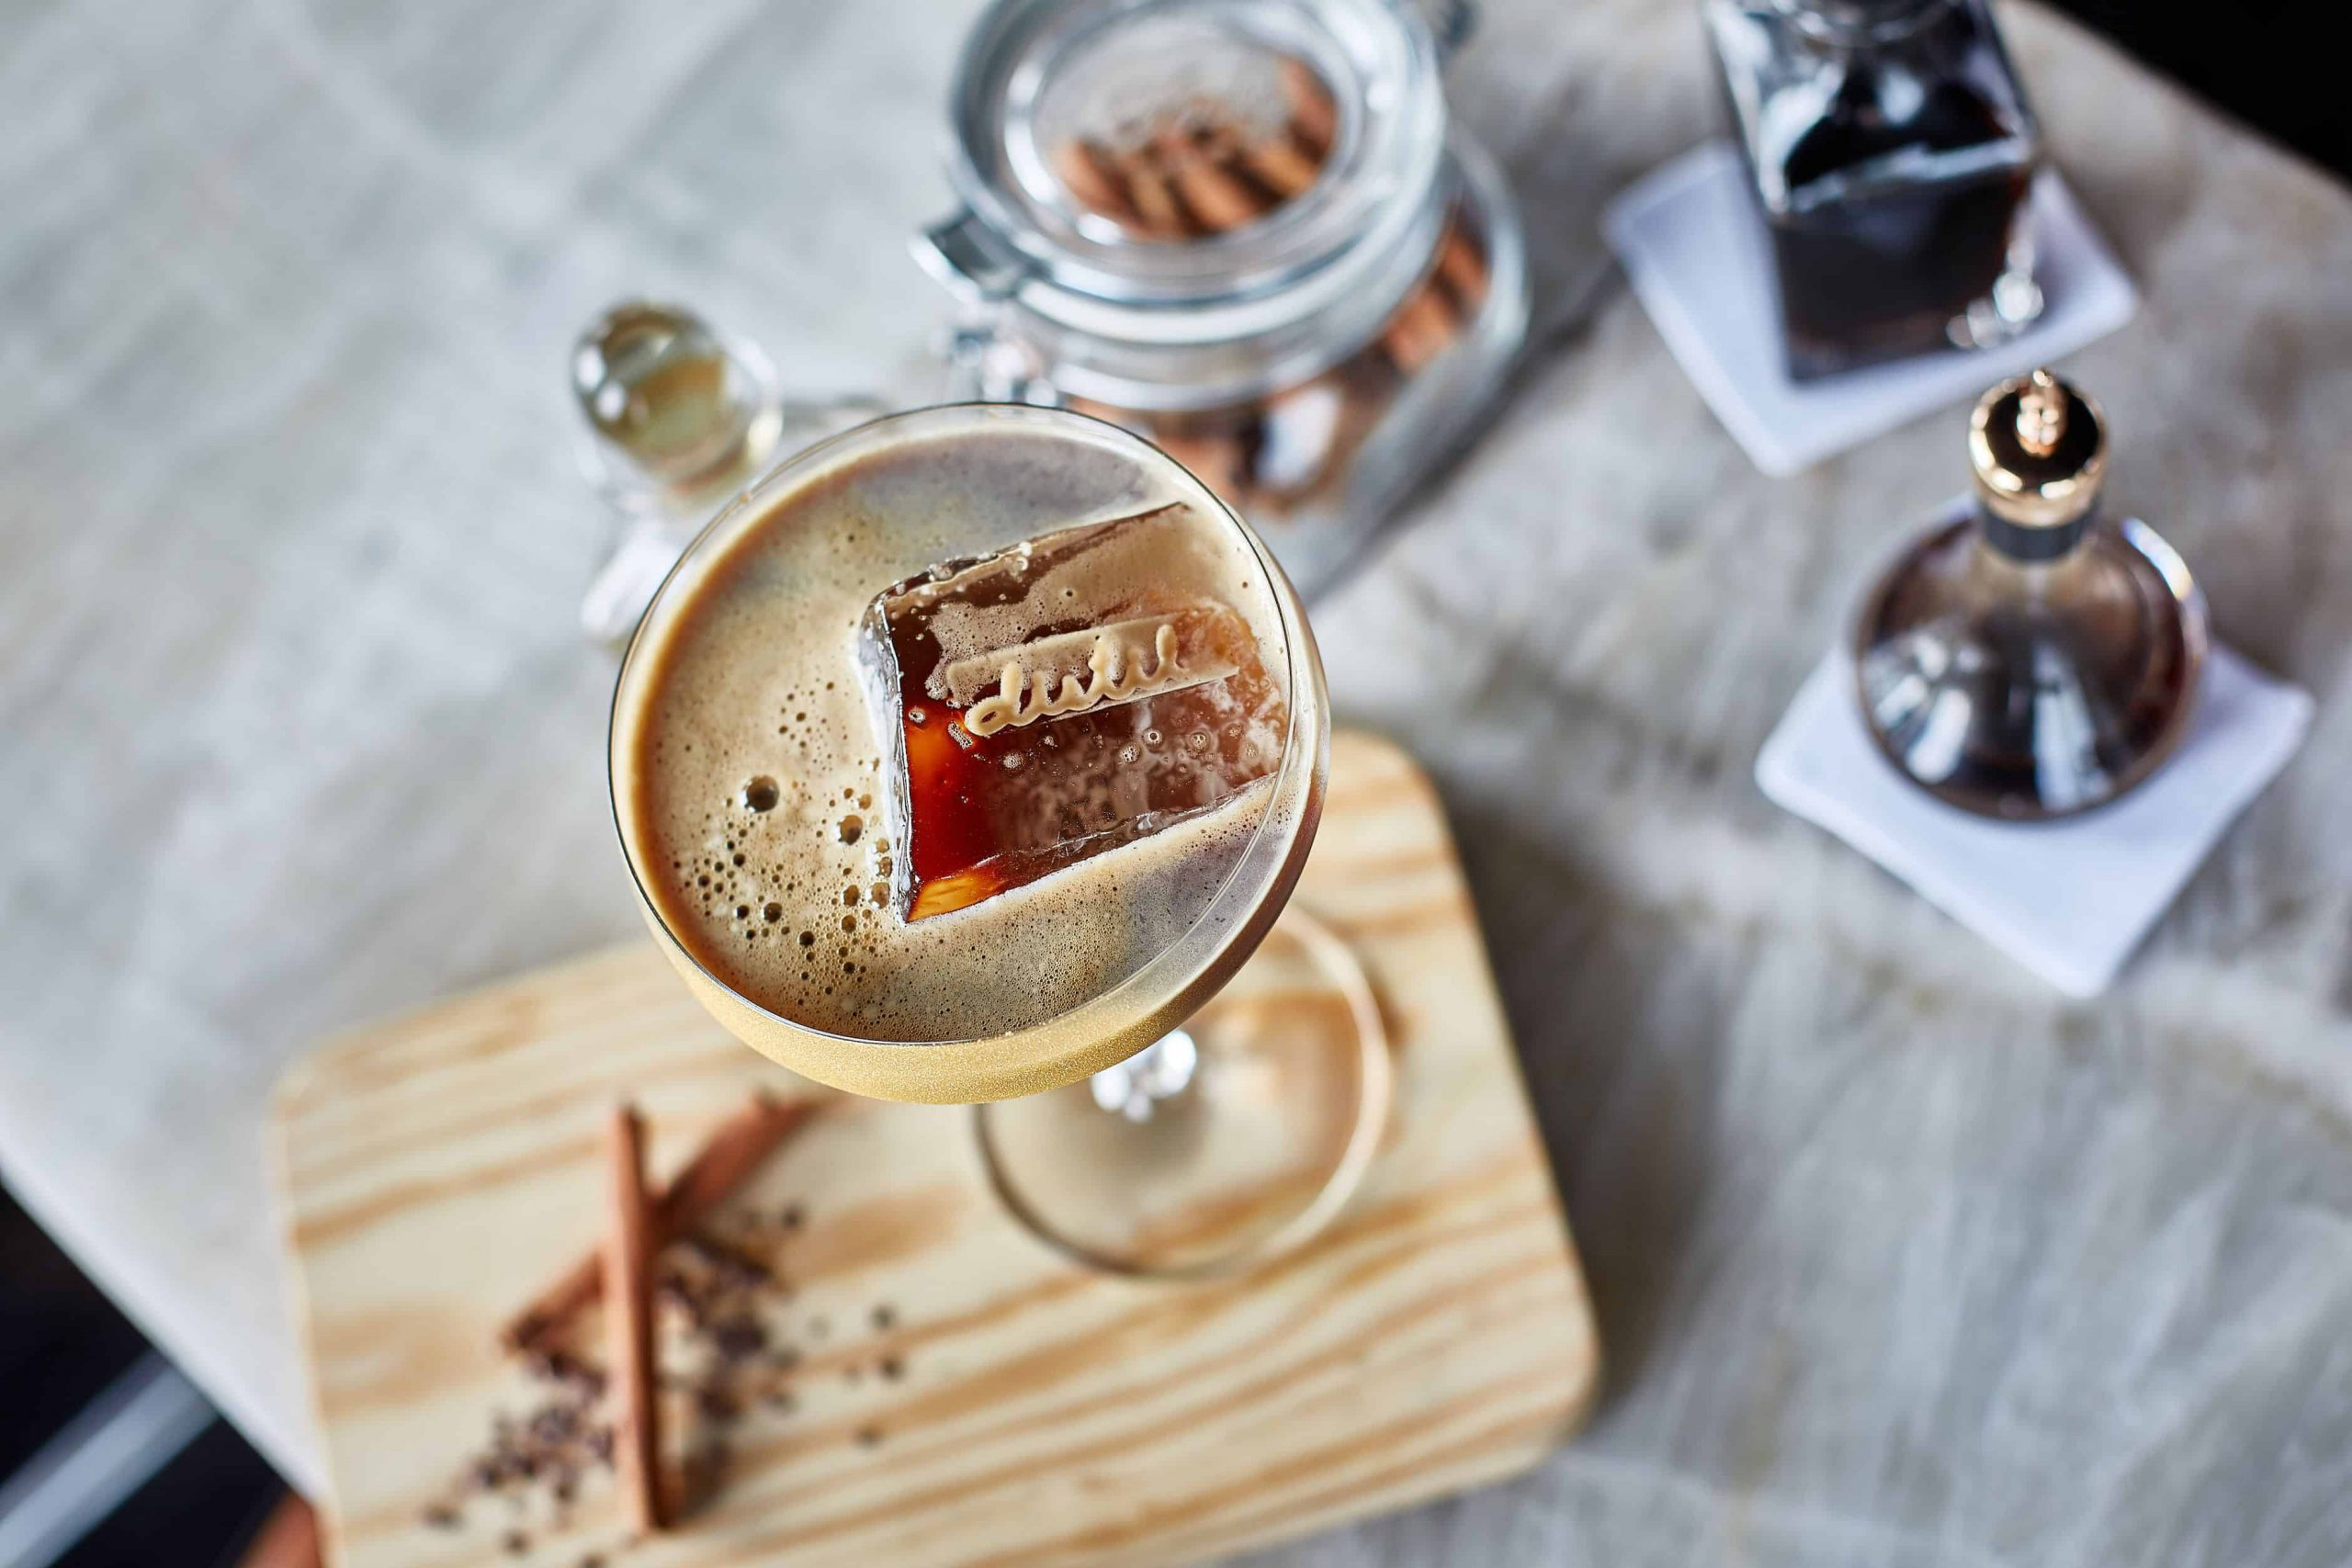 cocktail with ice cube on wooden board with cinnamon